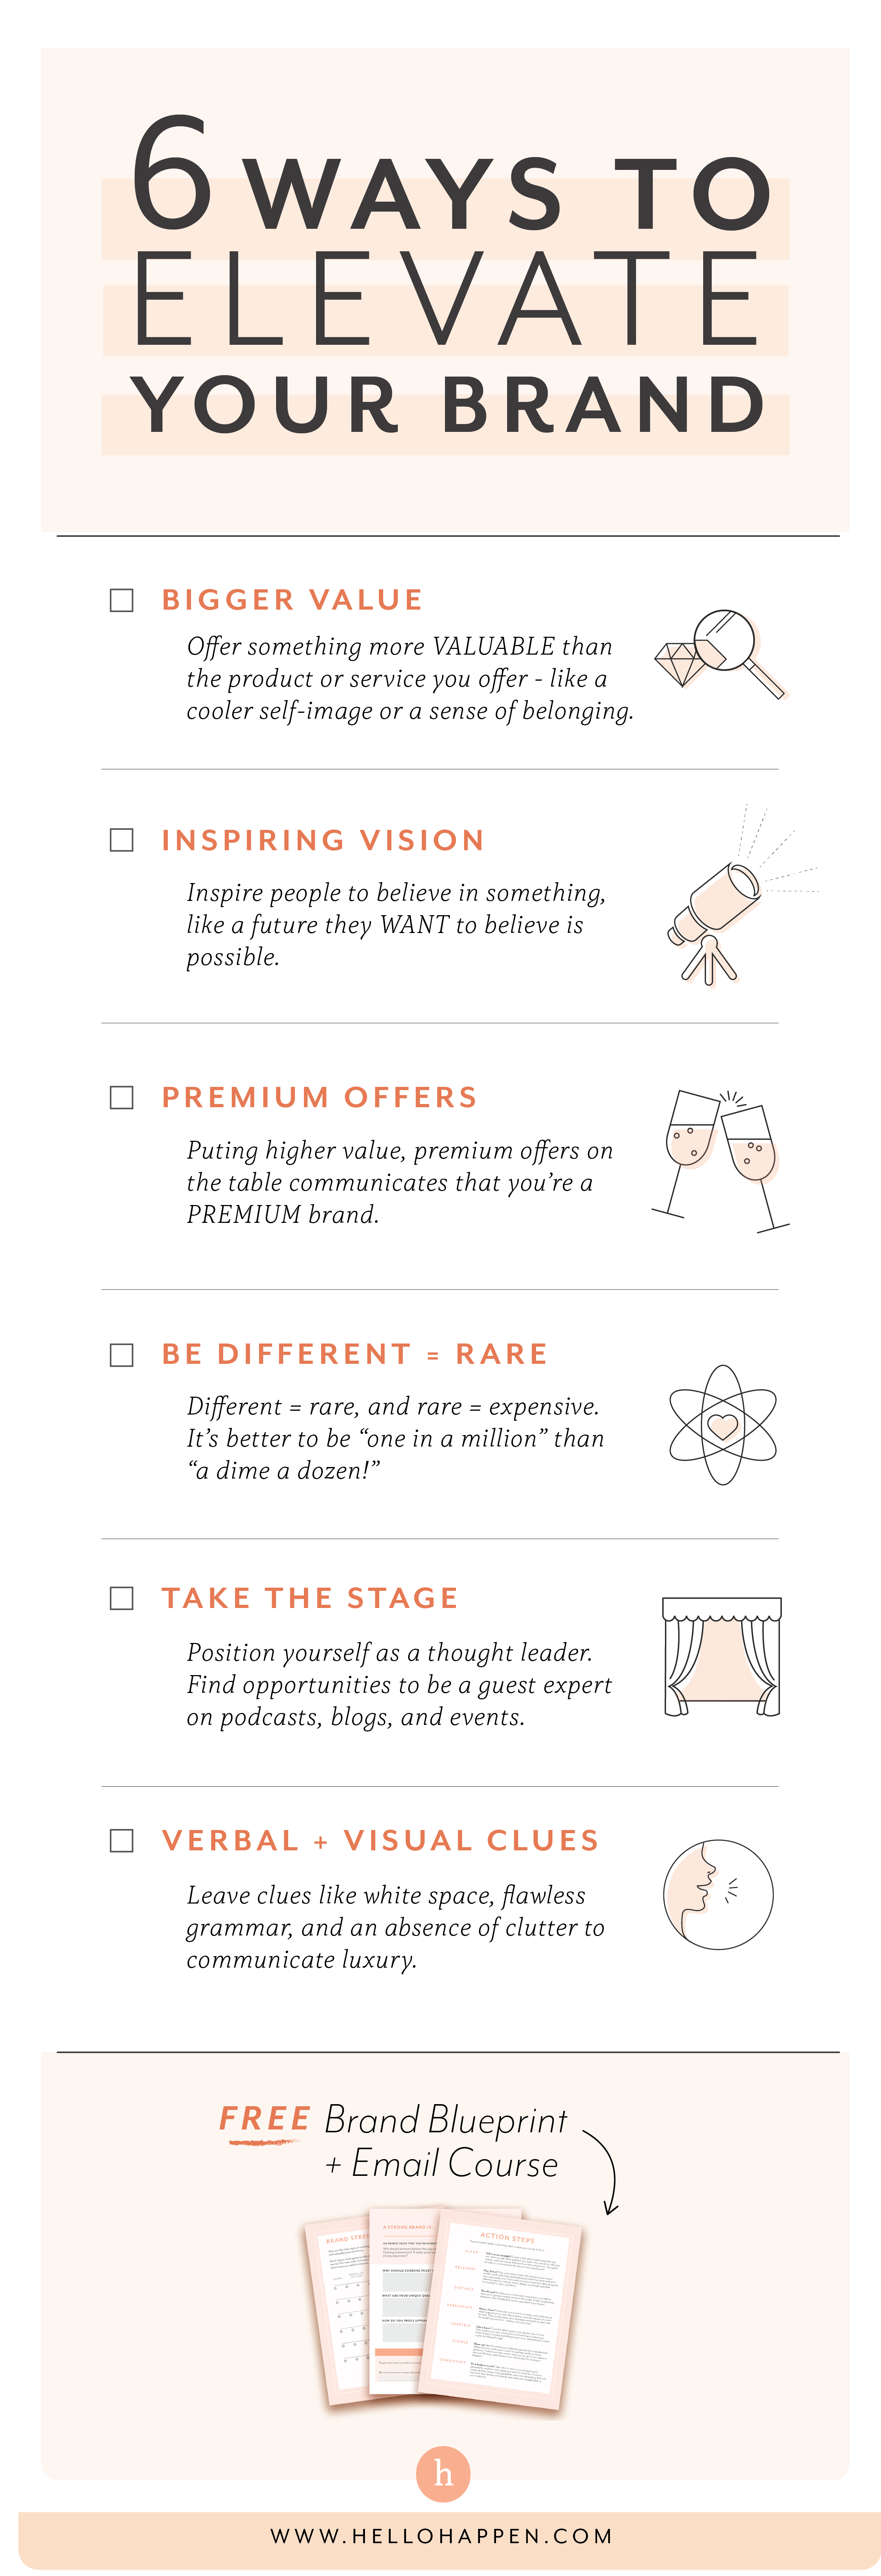 If you want to build a premium brand, you have to ELEVATE it in people's minds. Here are 6 methods you can use today! // Hellohappen Brand Strategy / brand strategy for passionate entrepreneurs #salesstrategy #mindfulbusiness